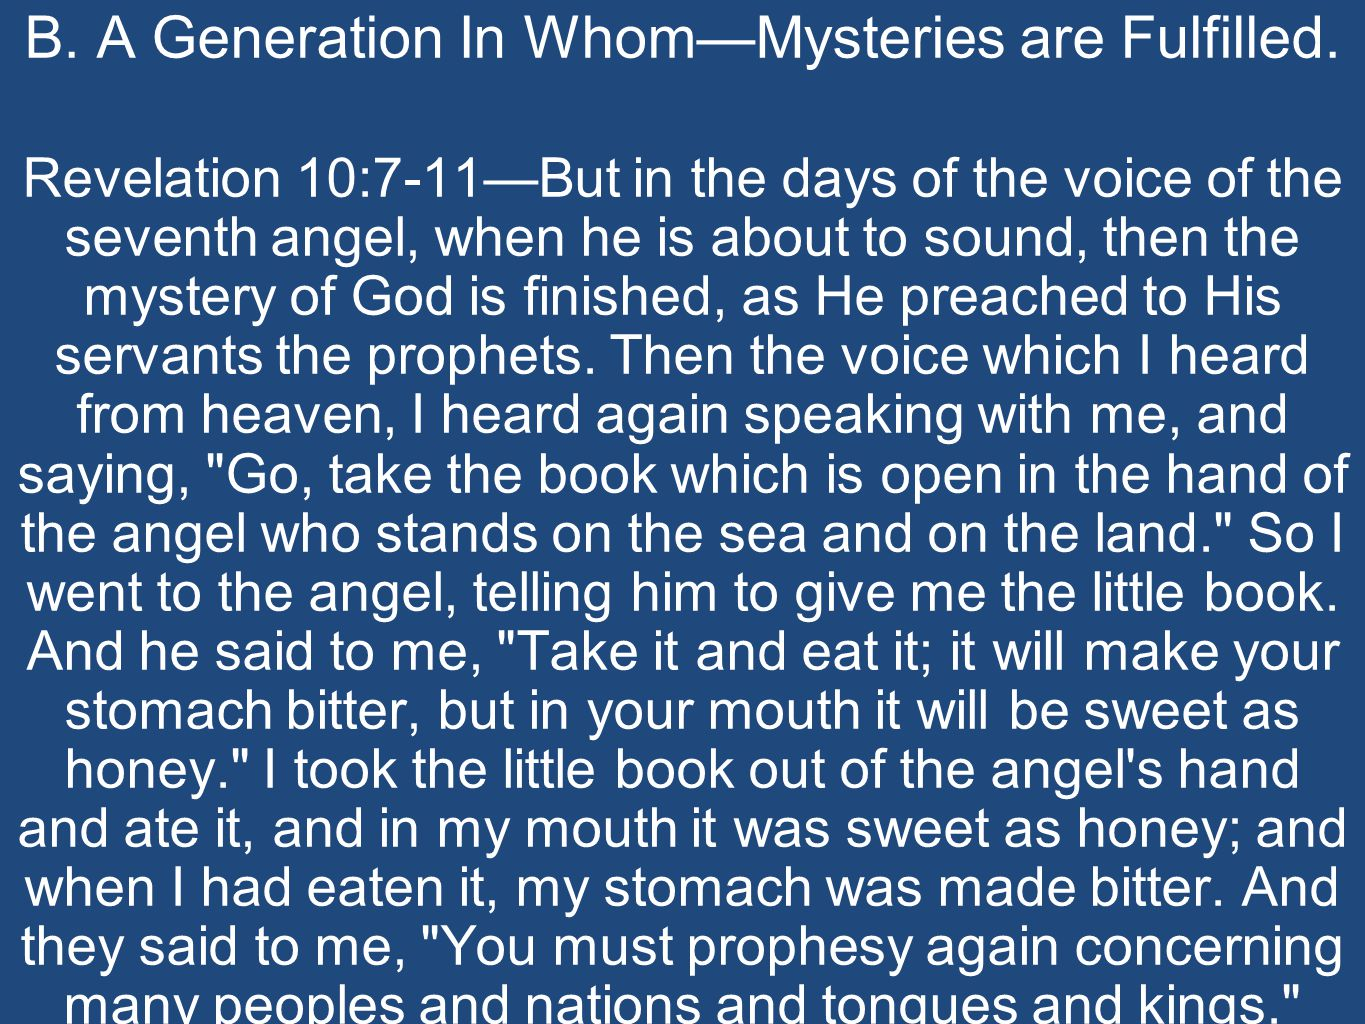 B. A Generation In Whom—Mysteries are Fulfilled.